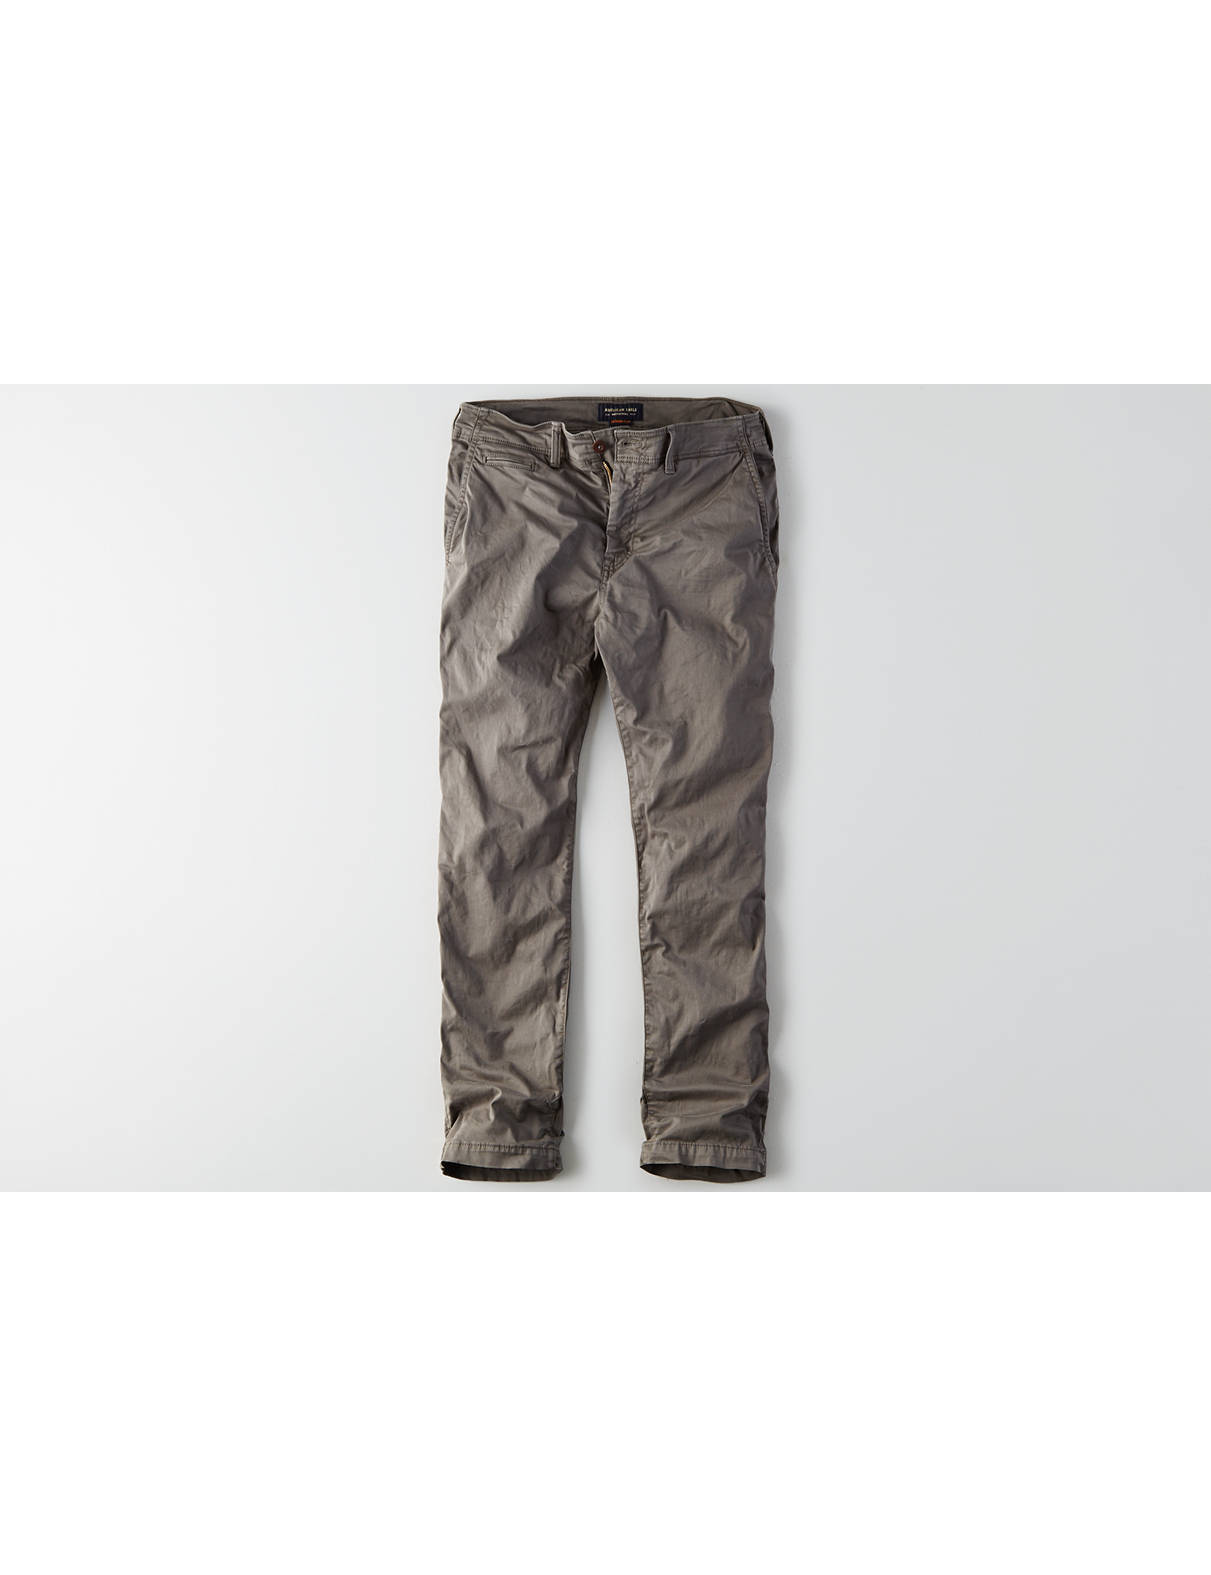 Khakis & Pants for Men | American Eagle Outfitters